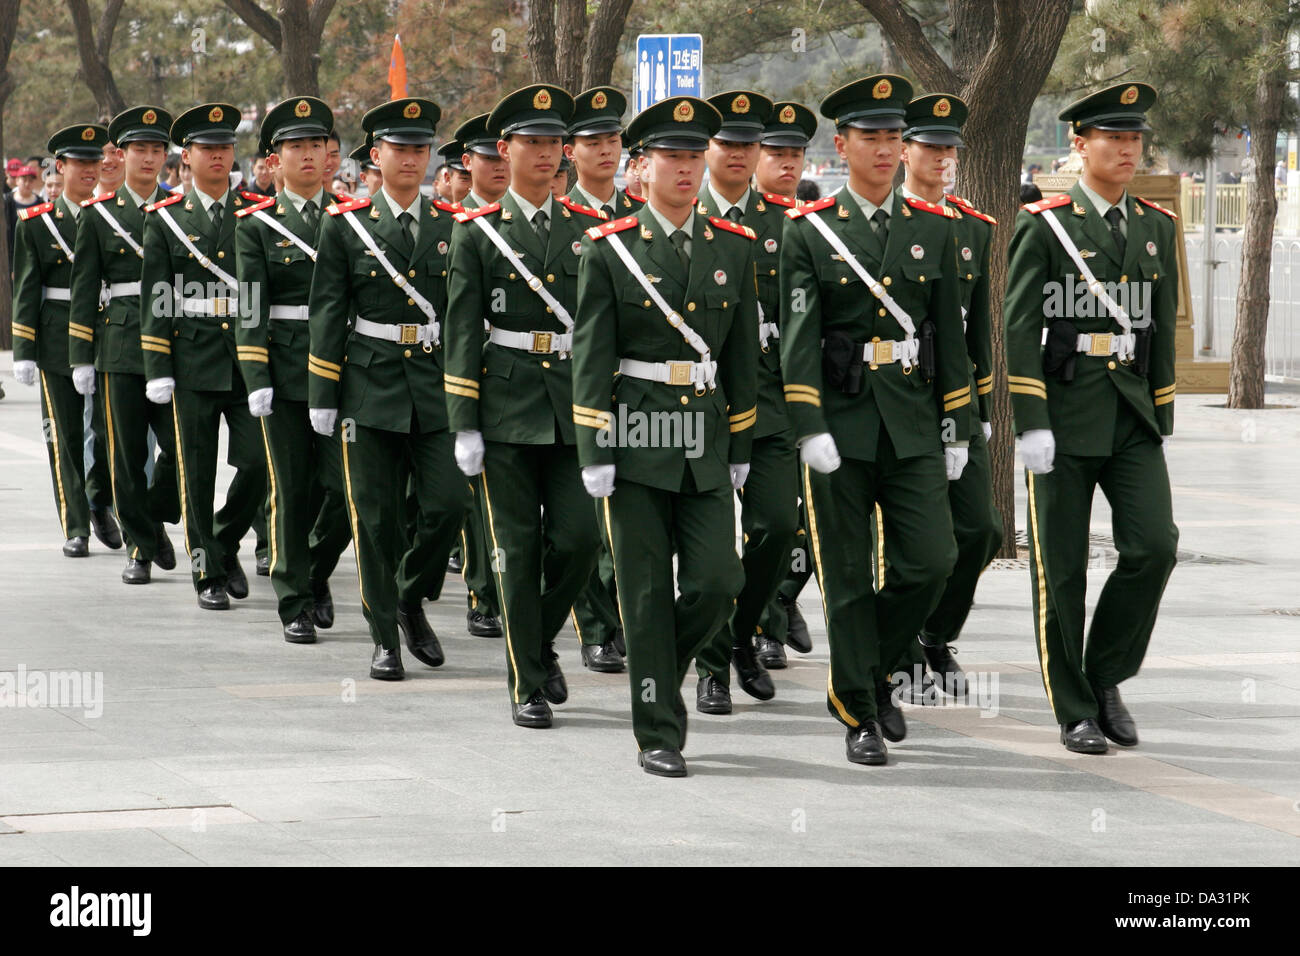 Chinese soldiers marching on Tiananmen Square, Beijing - Stock Image